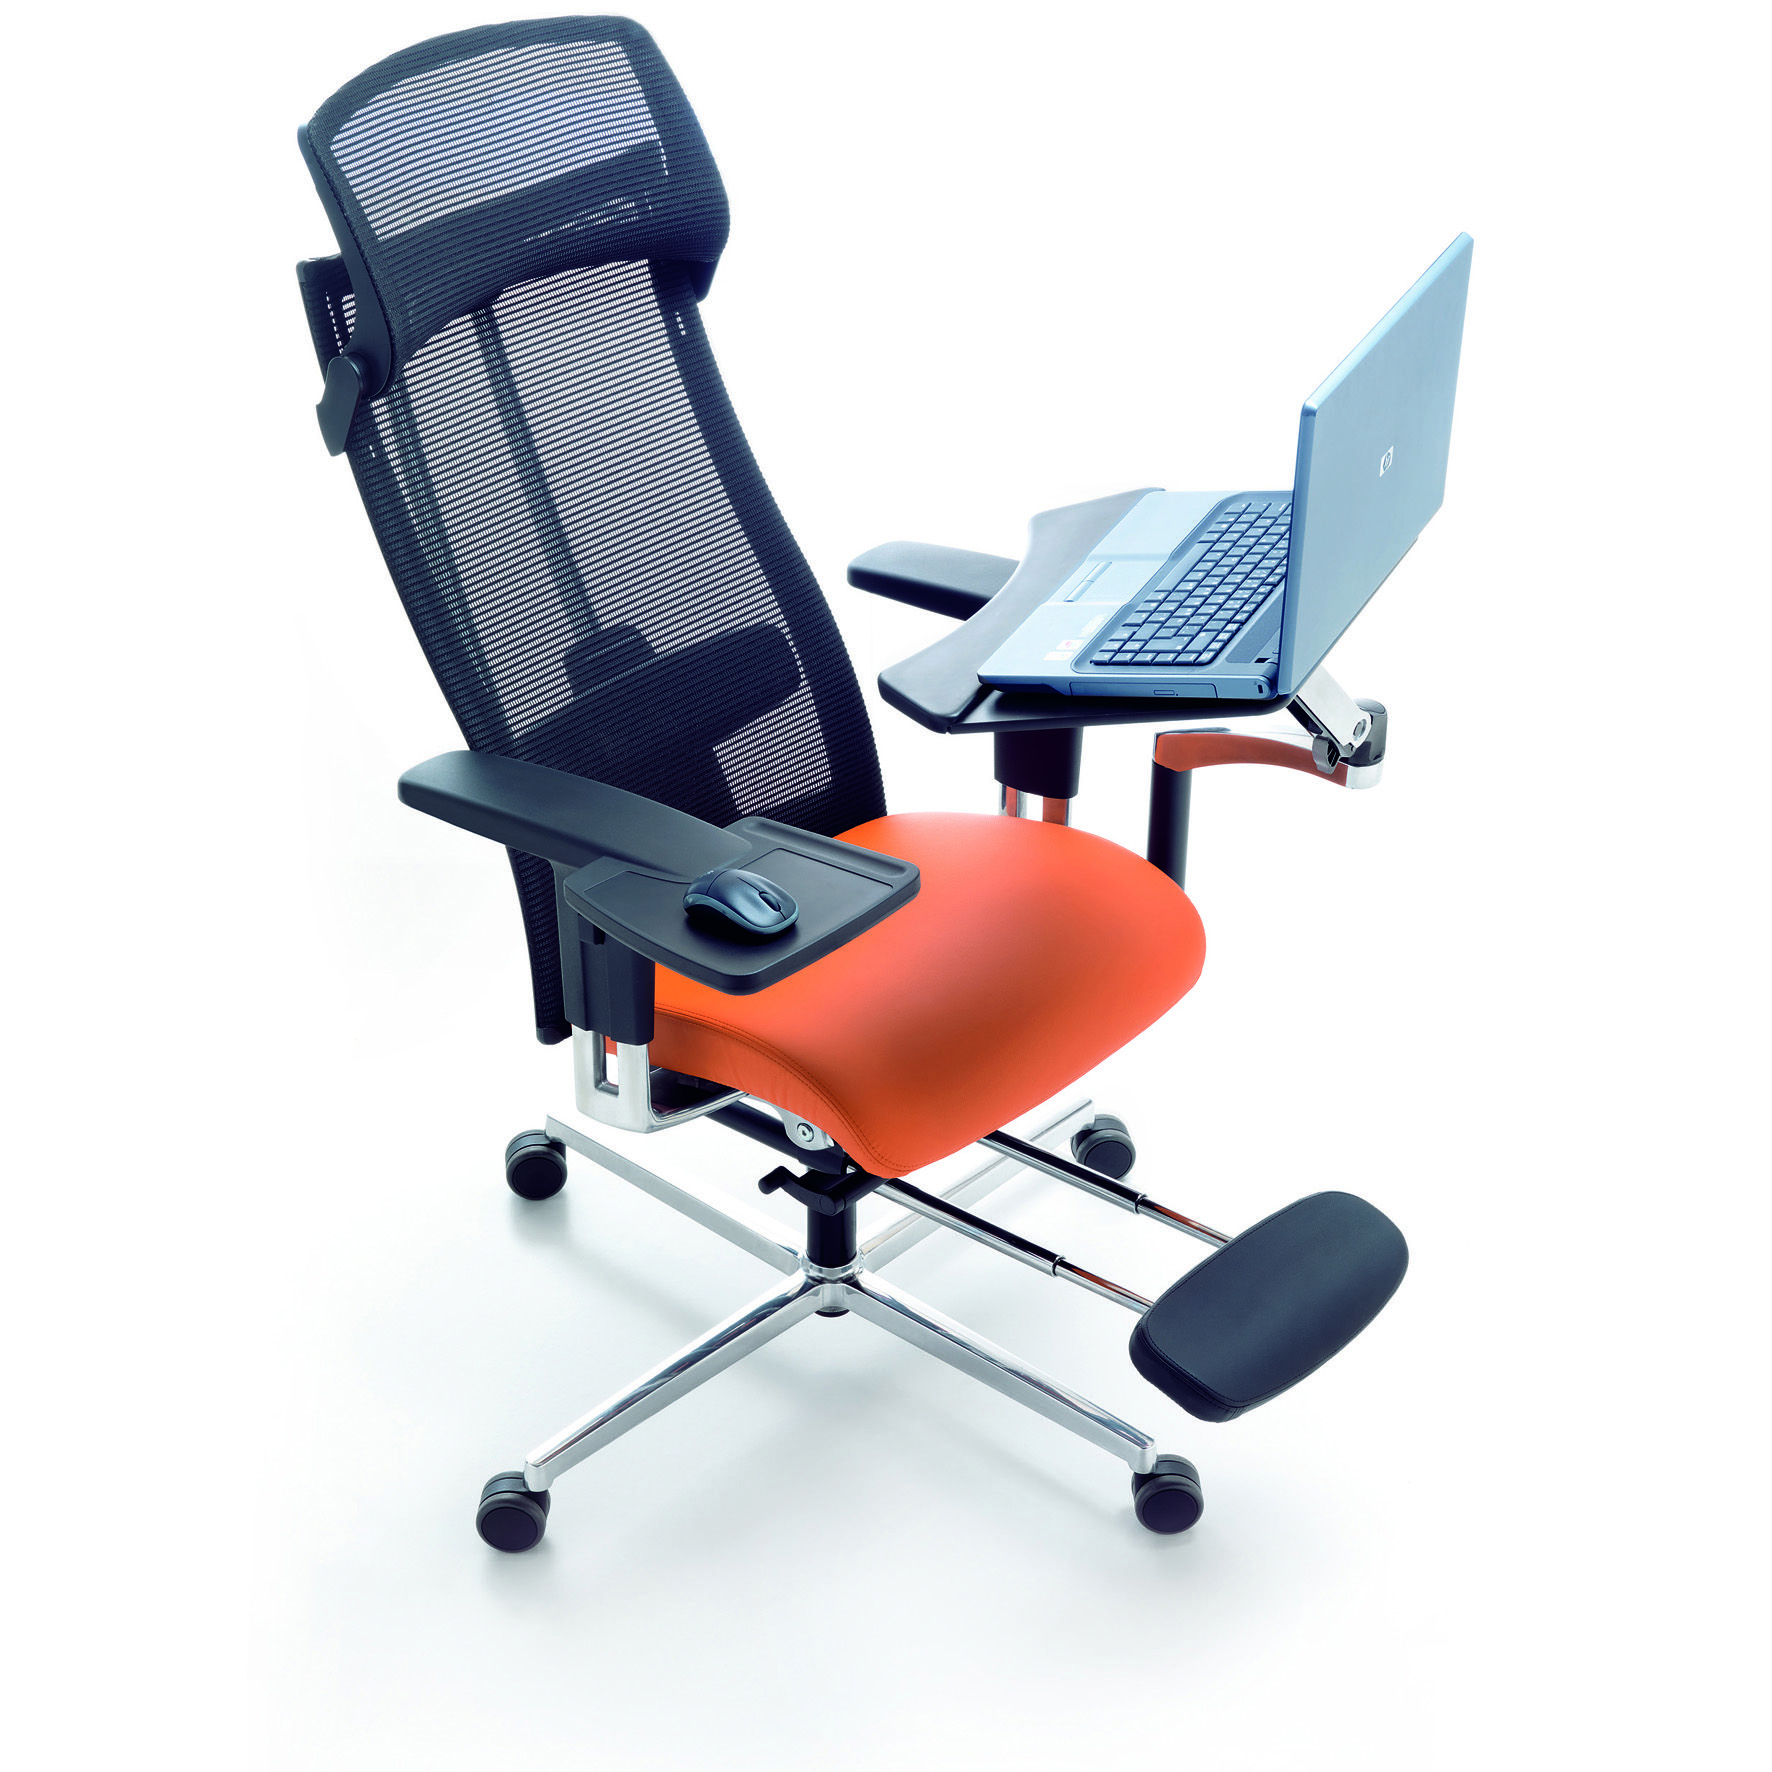 M Position Office Chair Unique Functionality And Ideal For